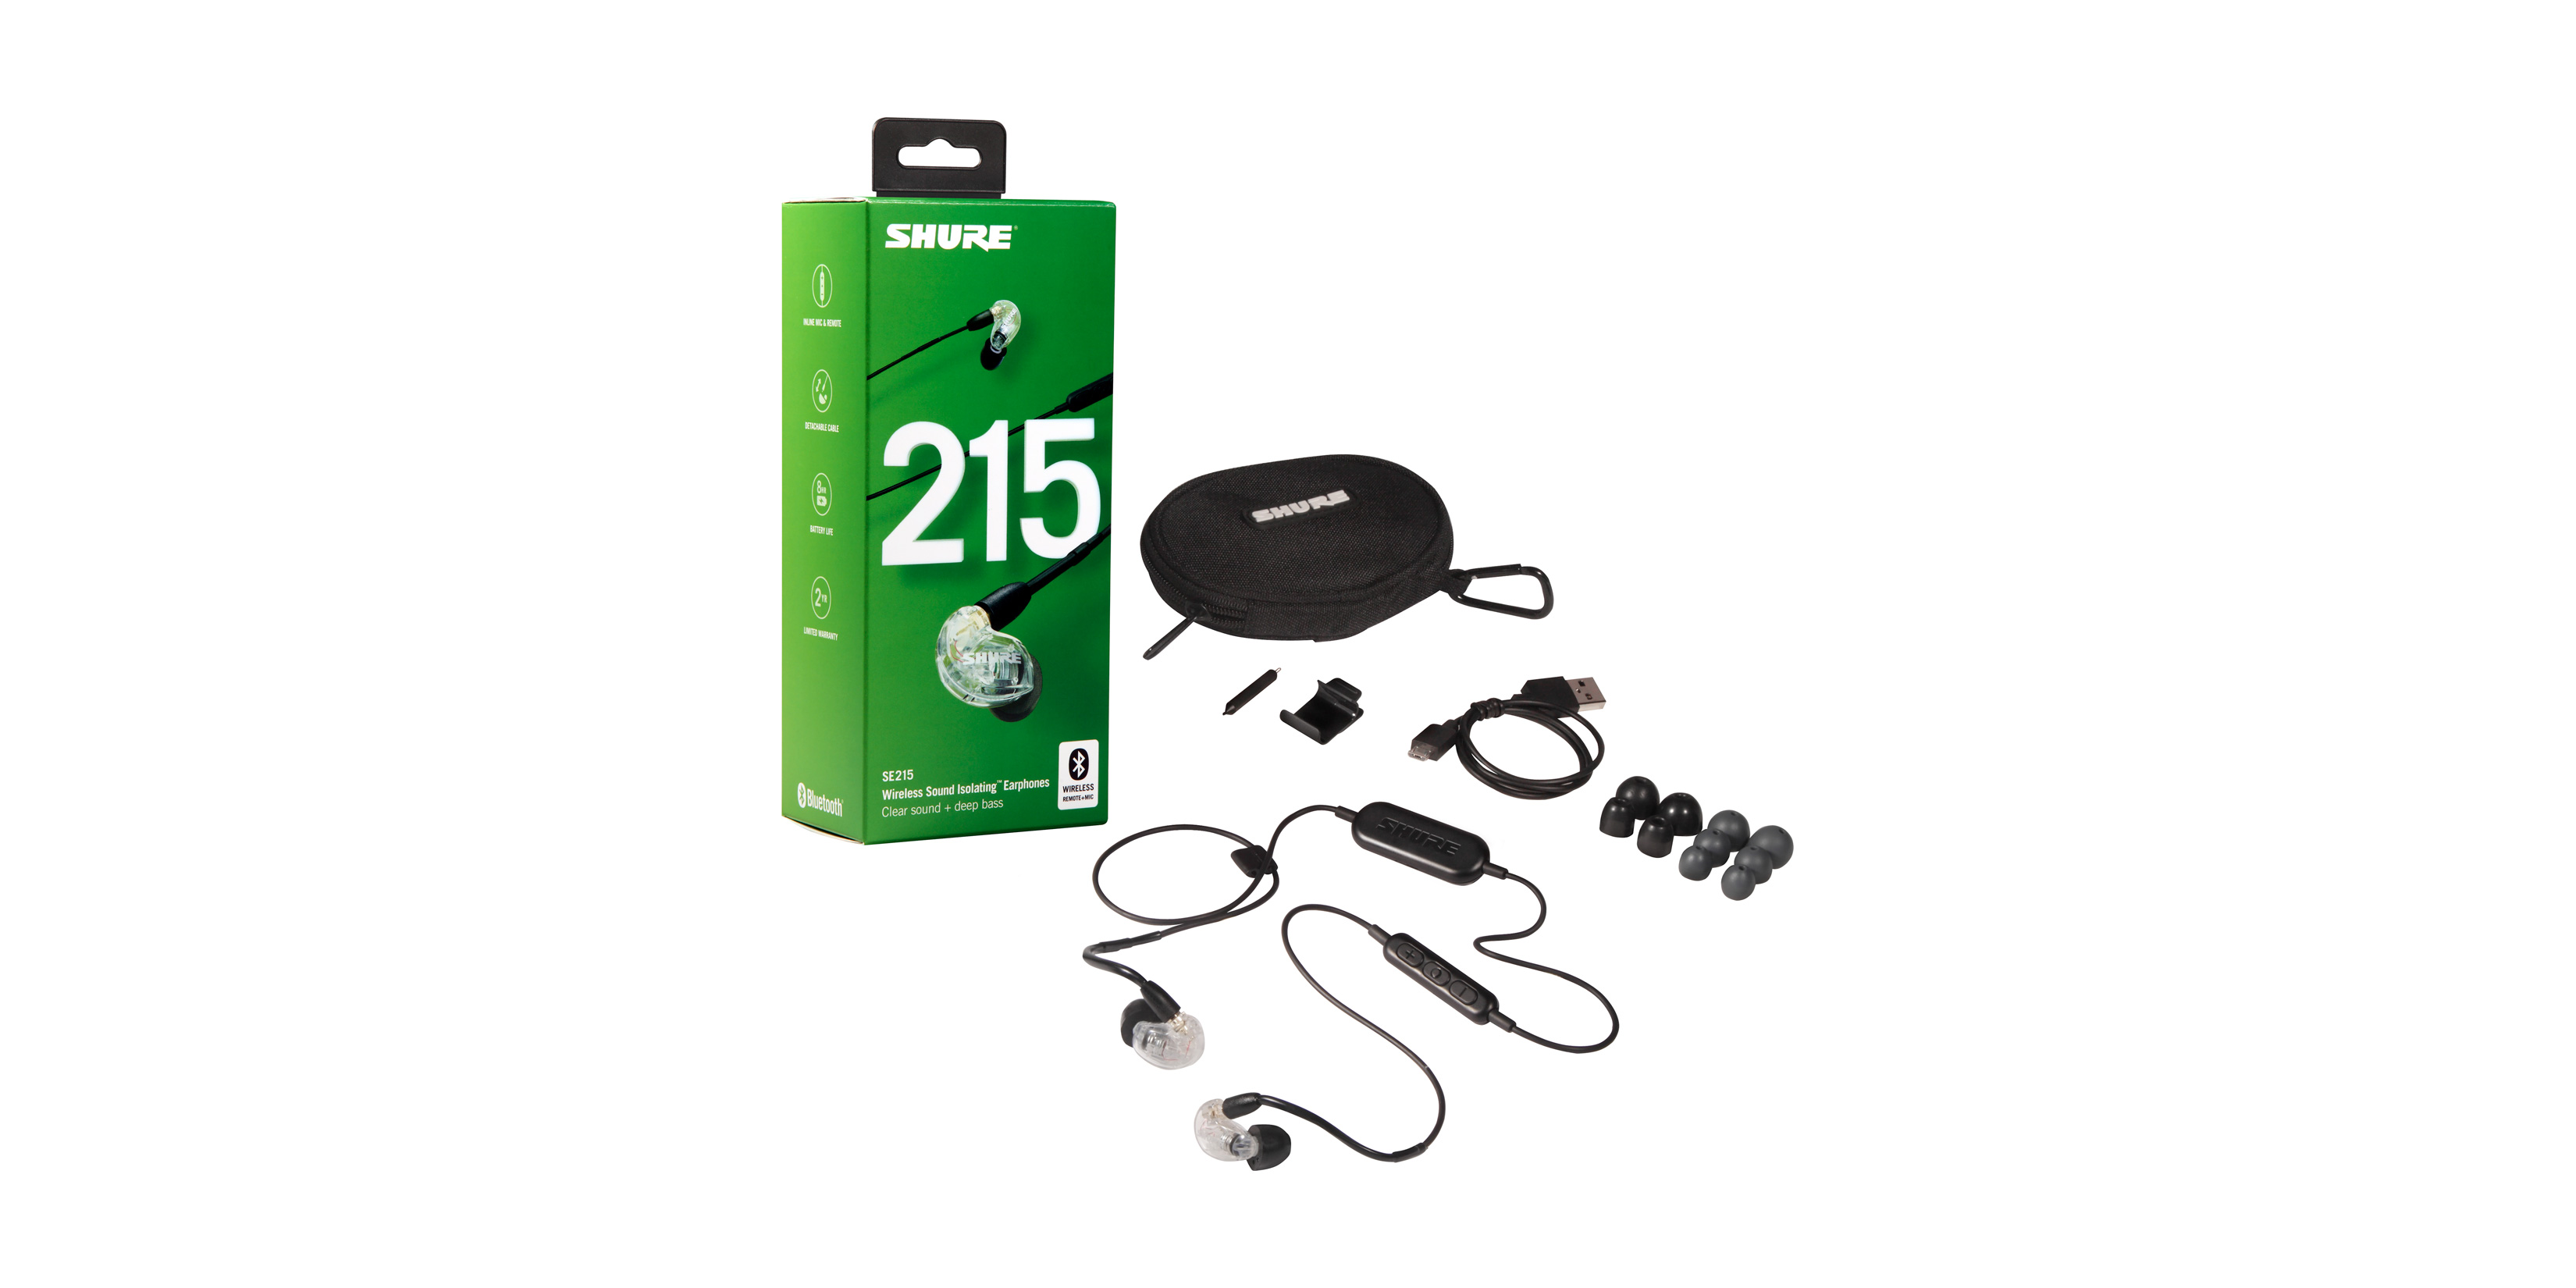 SE215 Sound Isolating™ Earphones